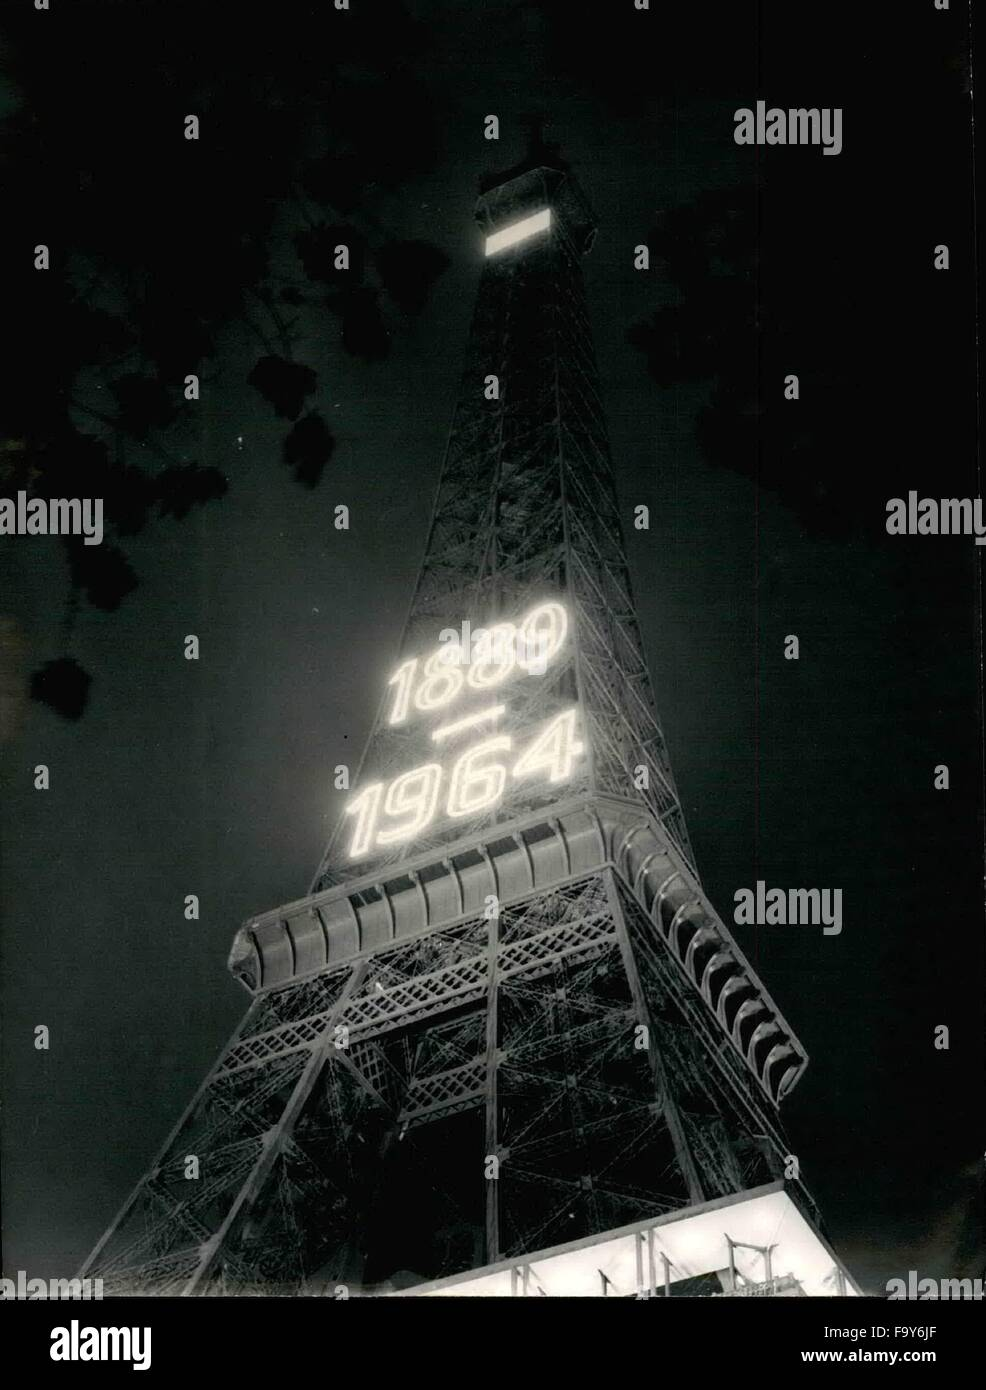 1964 eiffel tower freedom day independence day french happy new year keystone pictures usazumapresscomalamy live news